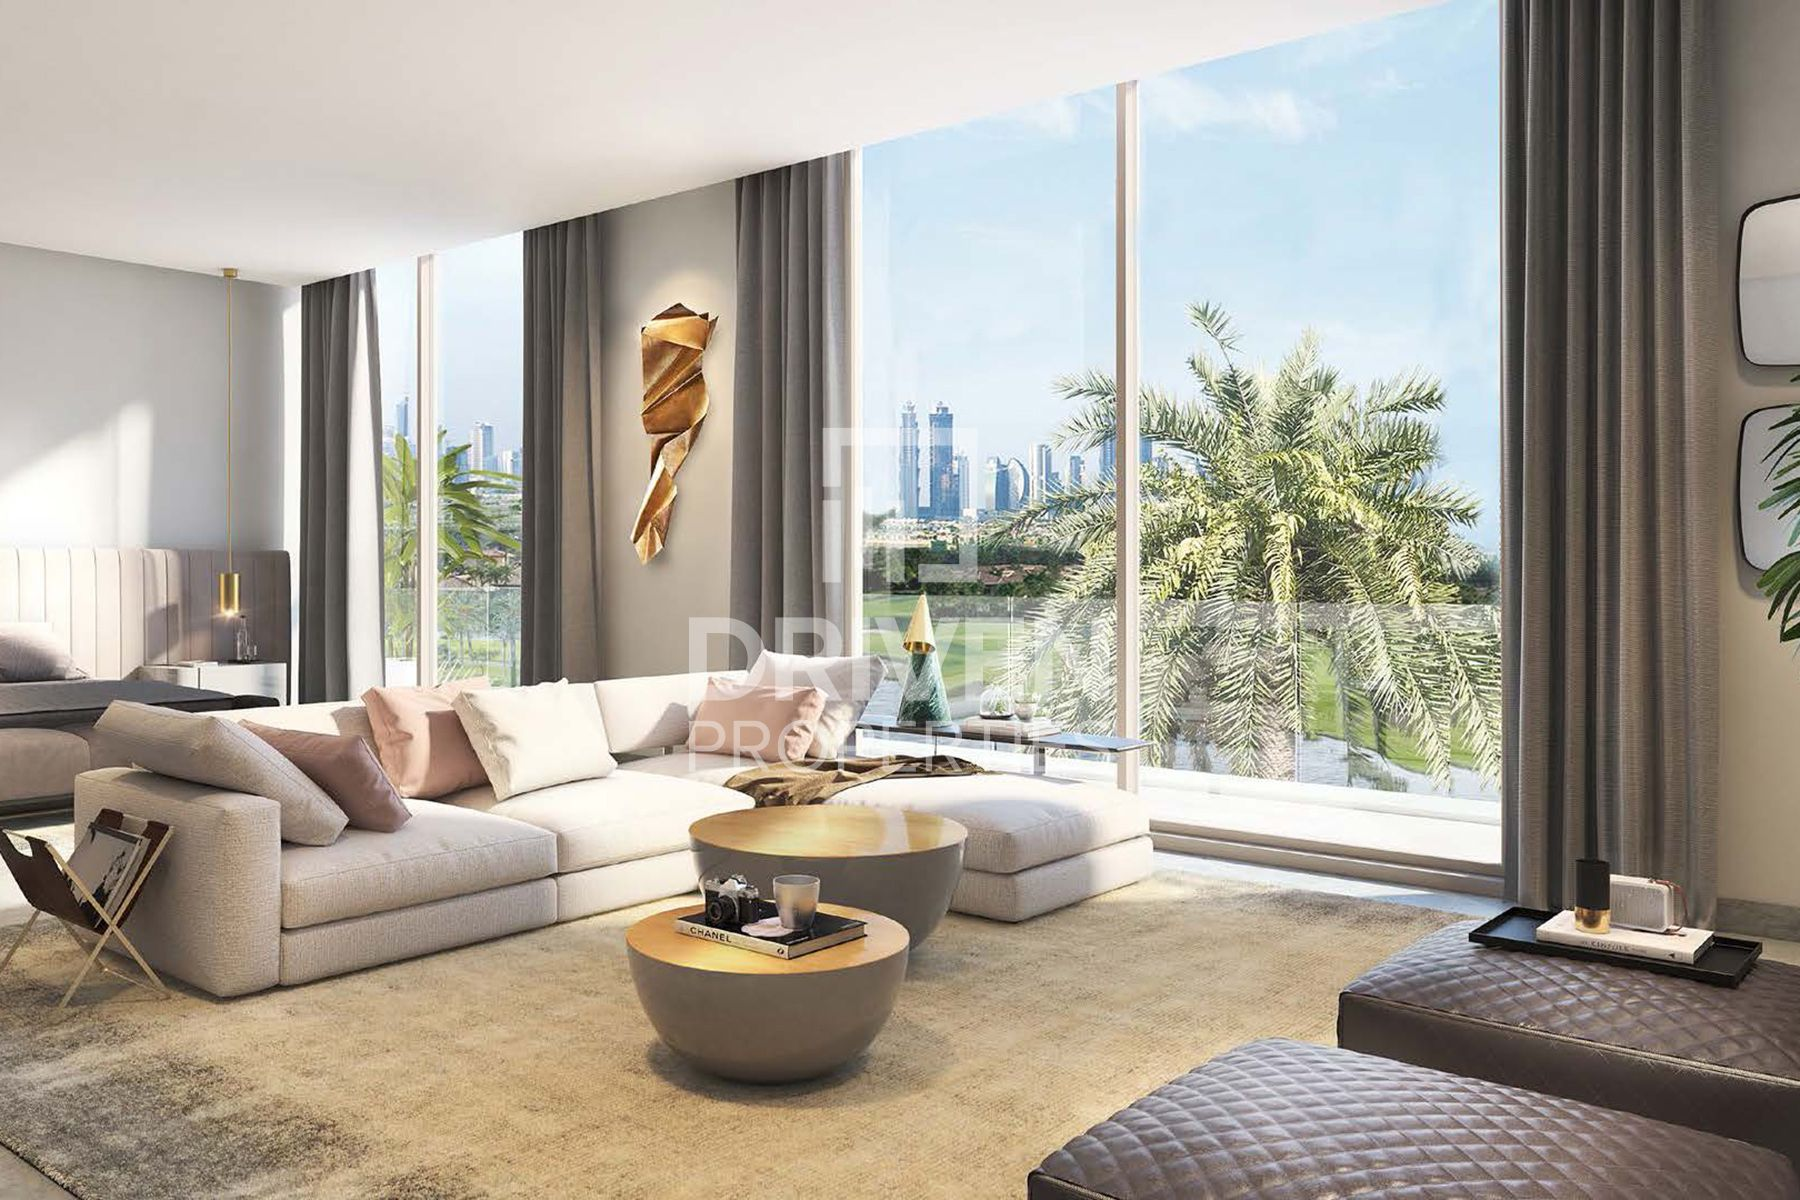 Phase 2 in Golf Place | New Luxury Villa